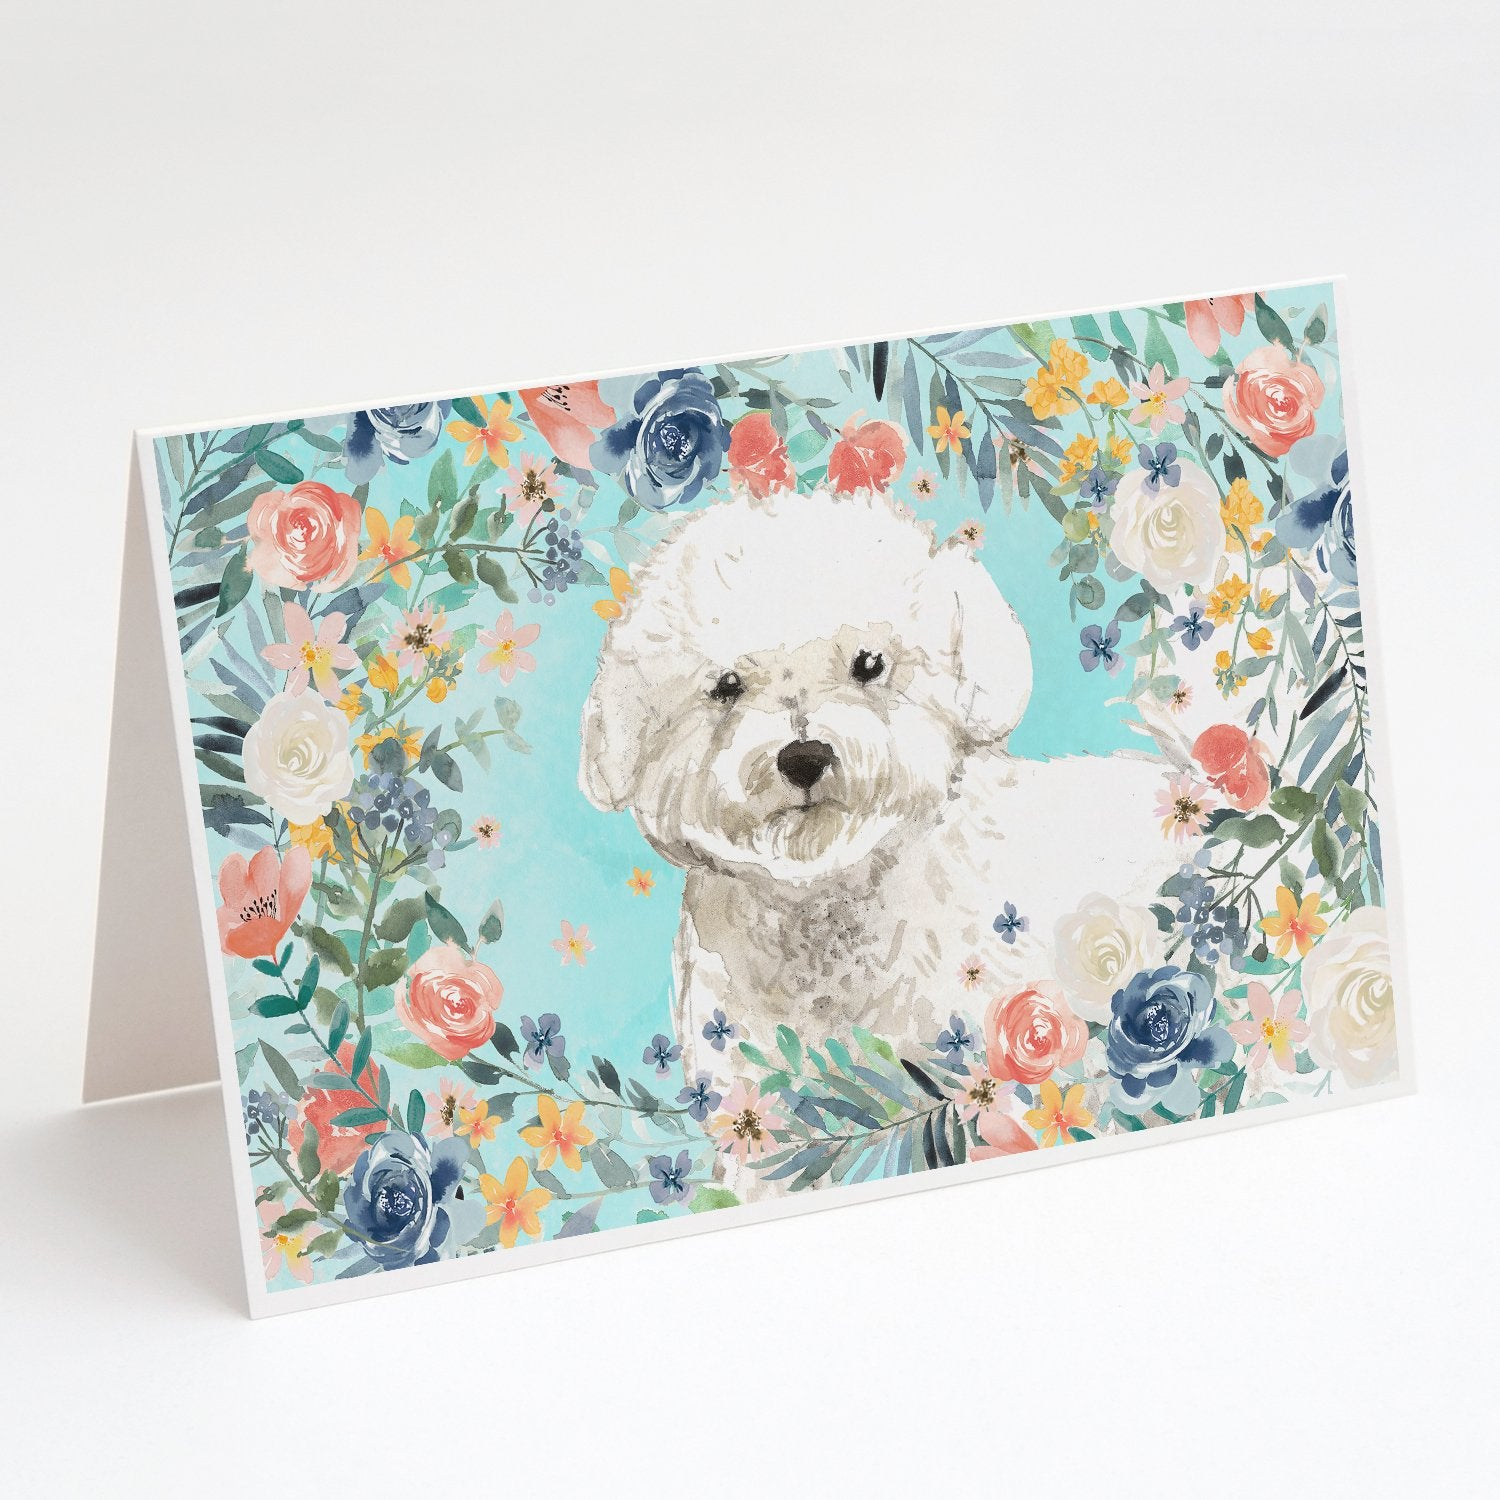 Buy this Bichon Frise Greeting Cards and Envelopes Pack of 8